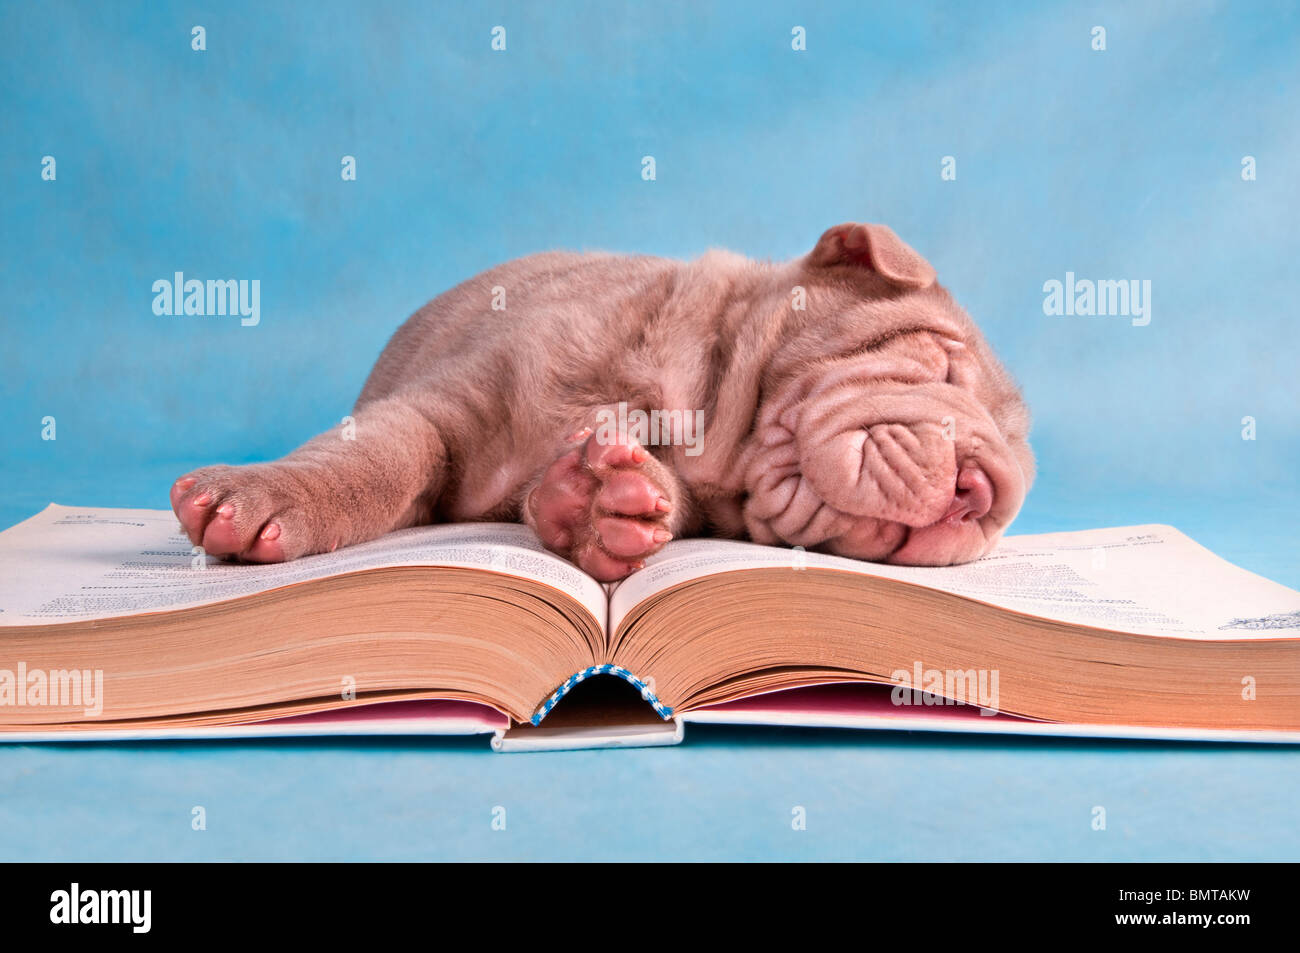 Little Cutie Fell Asleep While Reading a Book - Stock Image